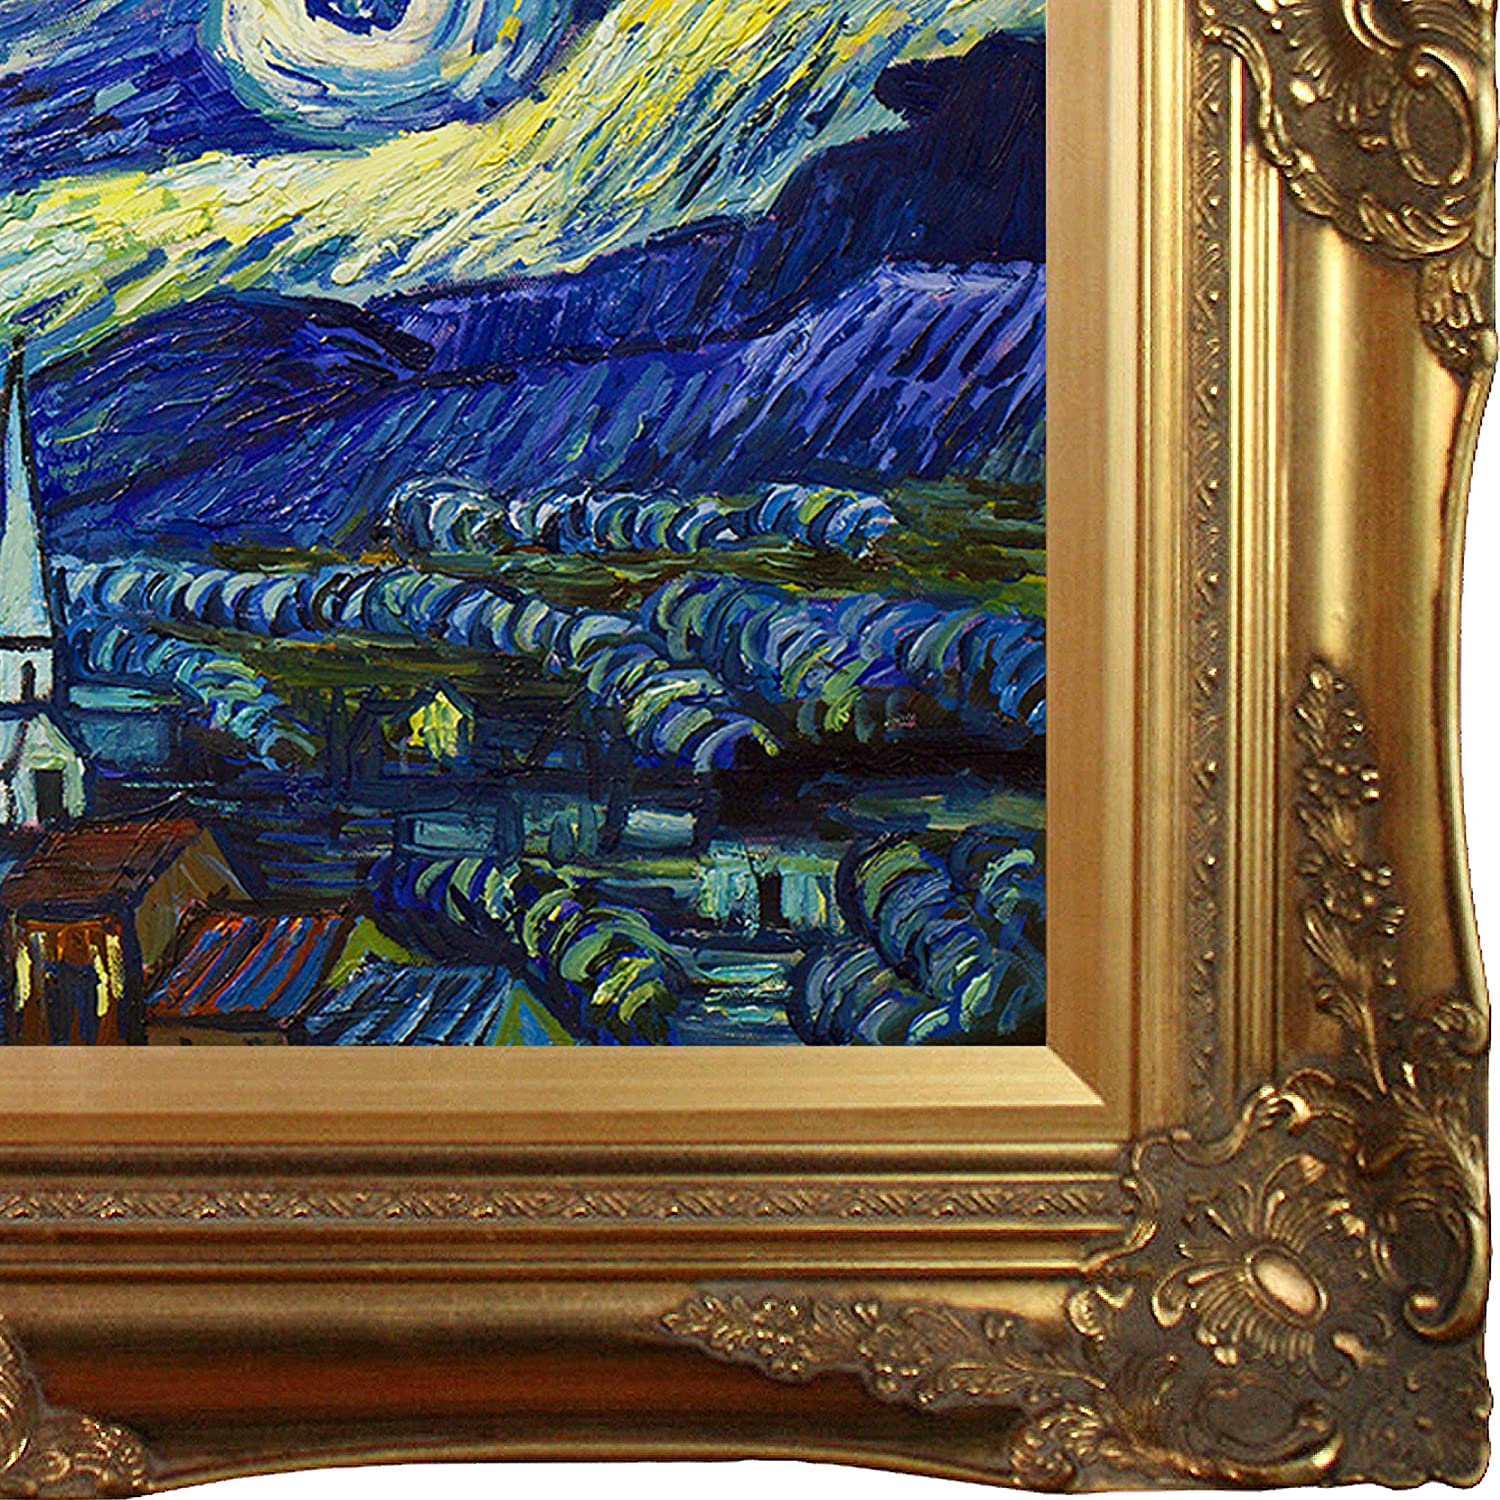 overstockArt Van Gogh Starry Night Painting with Victorian Gold Frame Gold Finish Oil Painting,